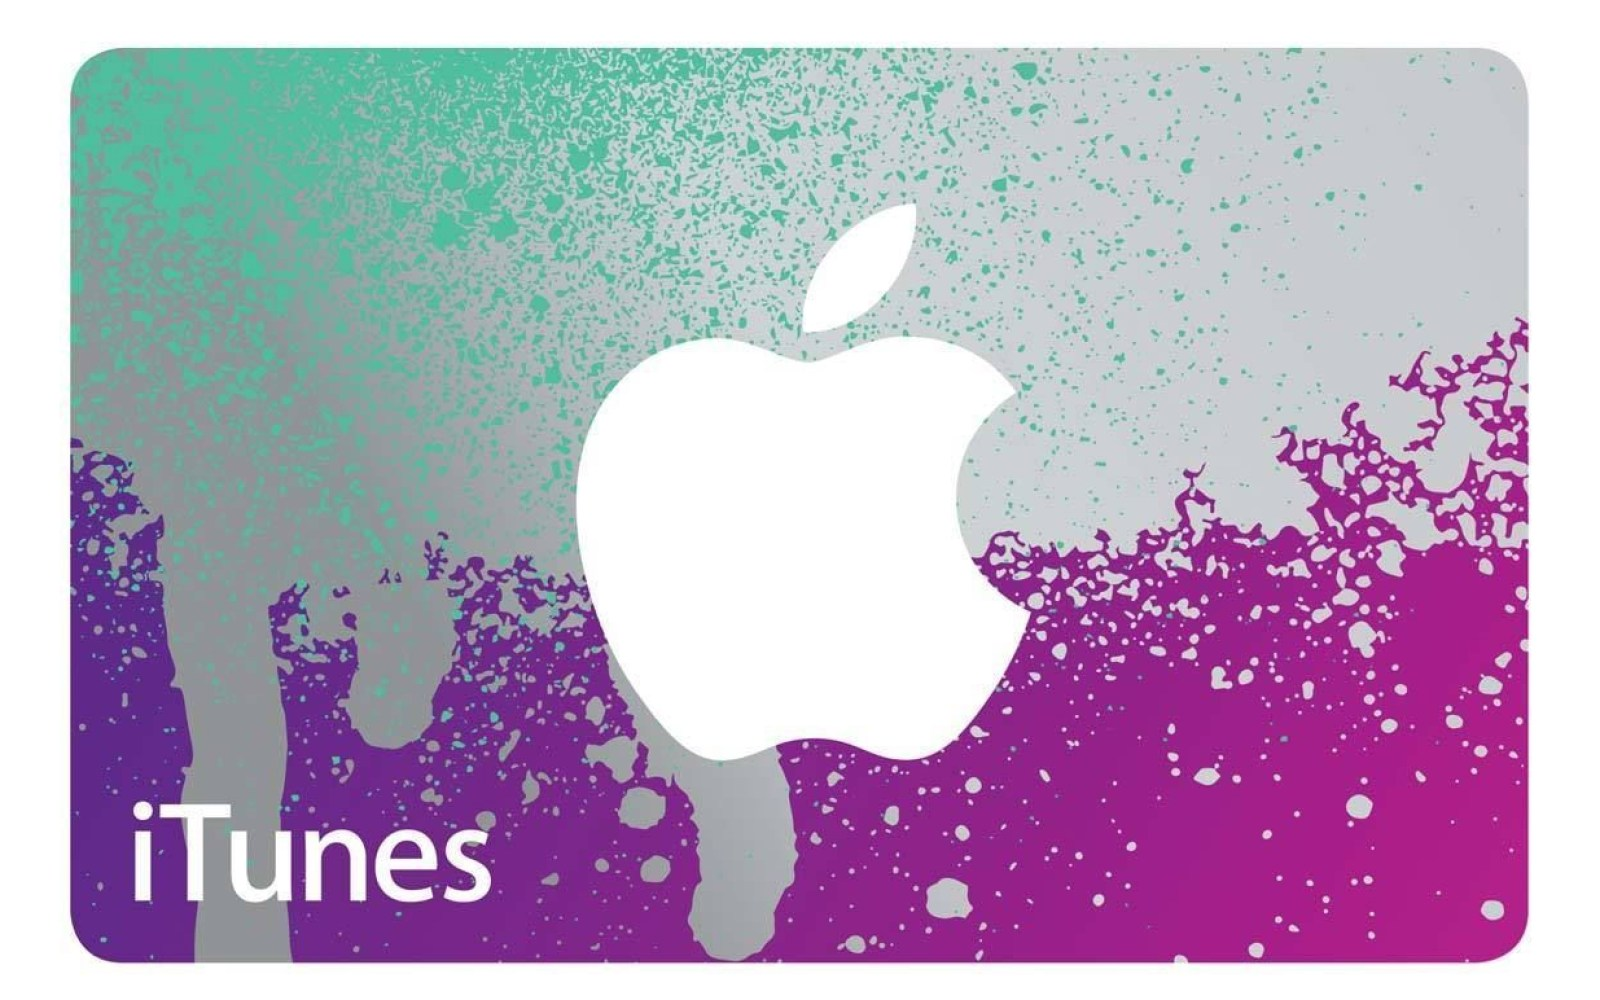 iTunes Gift Cards 20% off w/ free shipping: $100 for $80, $50 for $40 — Save on apps, music, movies, more